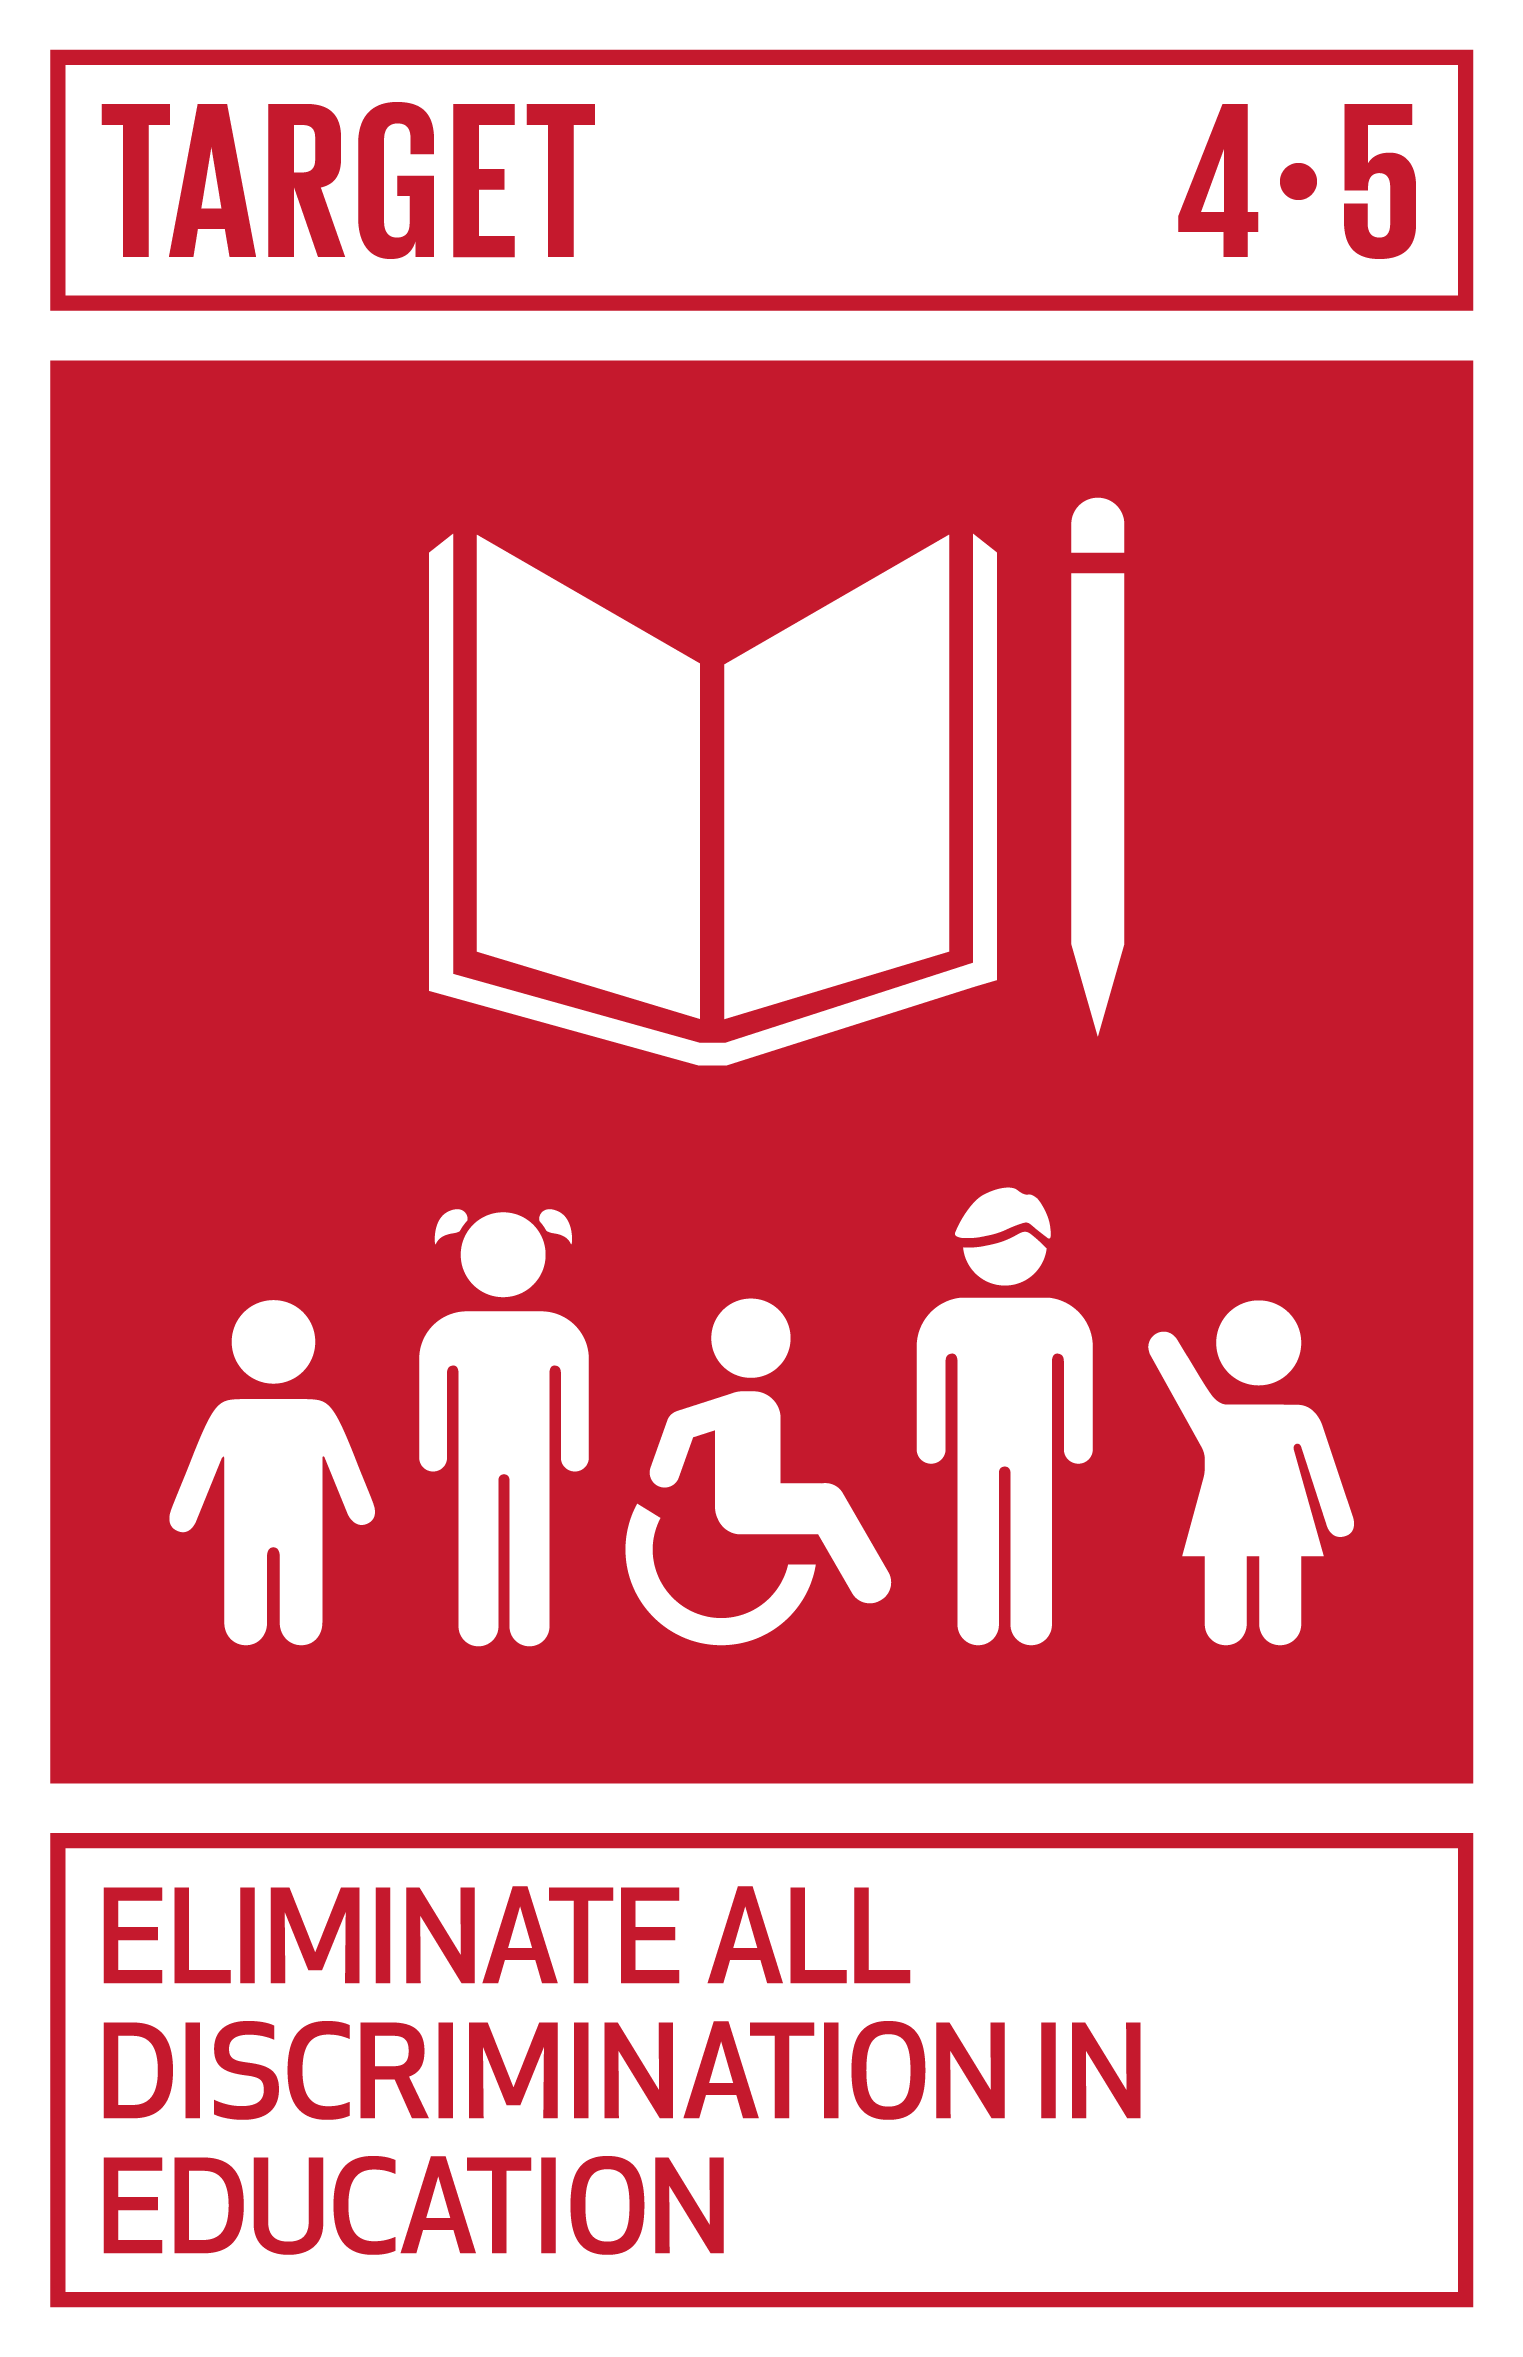 By 2030, eliminate gender disparities in education and ensure equal access to all levels of education and vocational training for the vulnerable, including persons with disabilities, indigenous peoples and children in vulnerable situations.   INDICATOR    4.5.1  Parity indices (female/male, rural/urban, bottom/top wealth quintile and others such as disability status, indigenous peoples and conflict-affected, as data become available) for all education indicators on this list that can be disaggregated